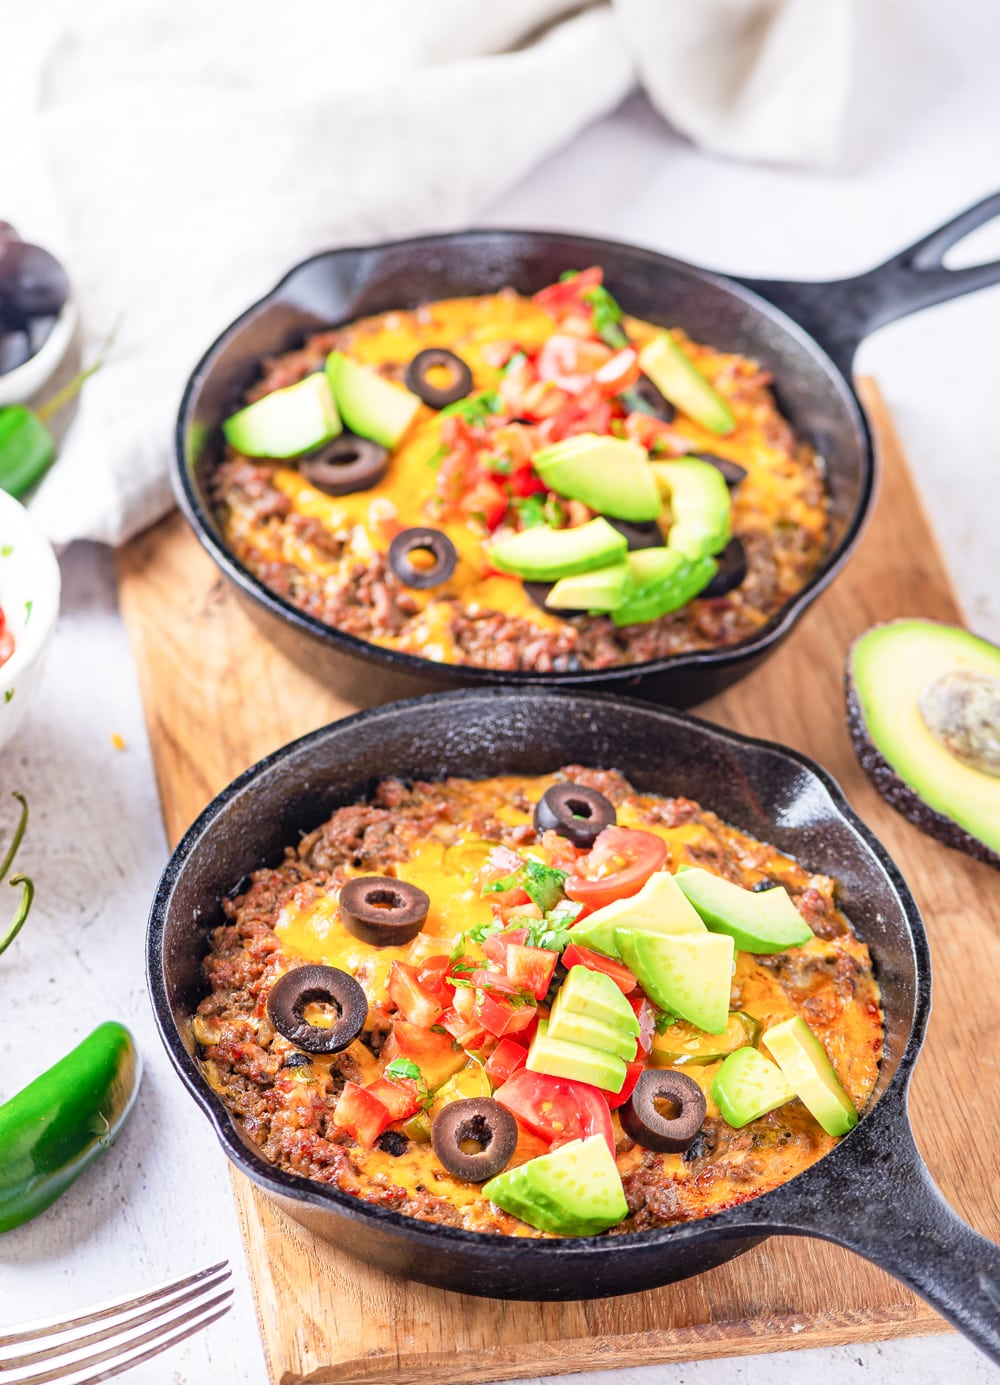 2 Cast iron pans filled with taco casserole and topped with black olives, salsa, and pieces of avocad.